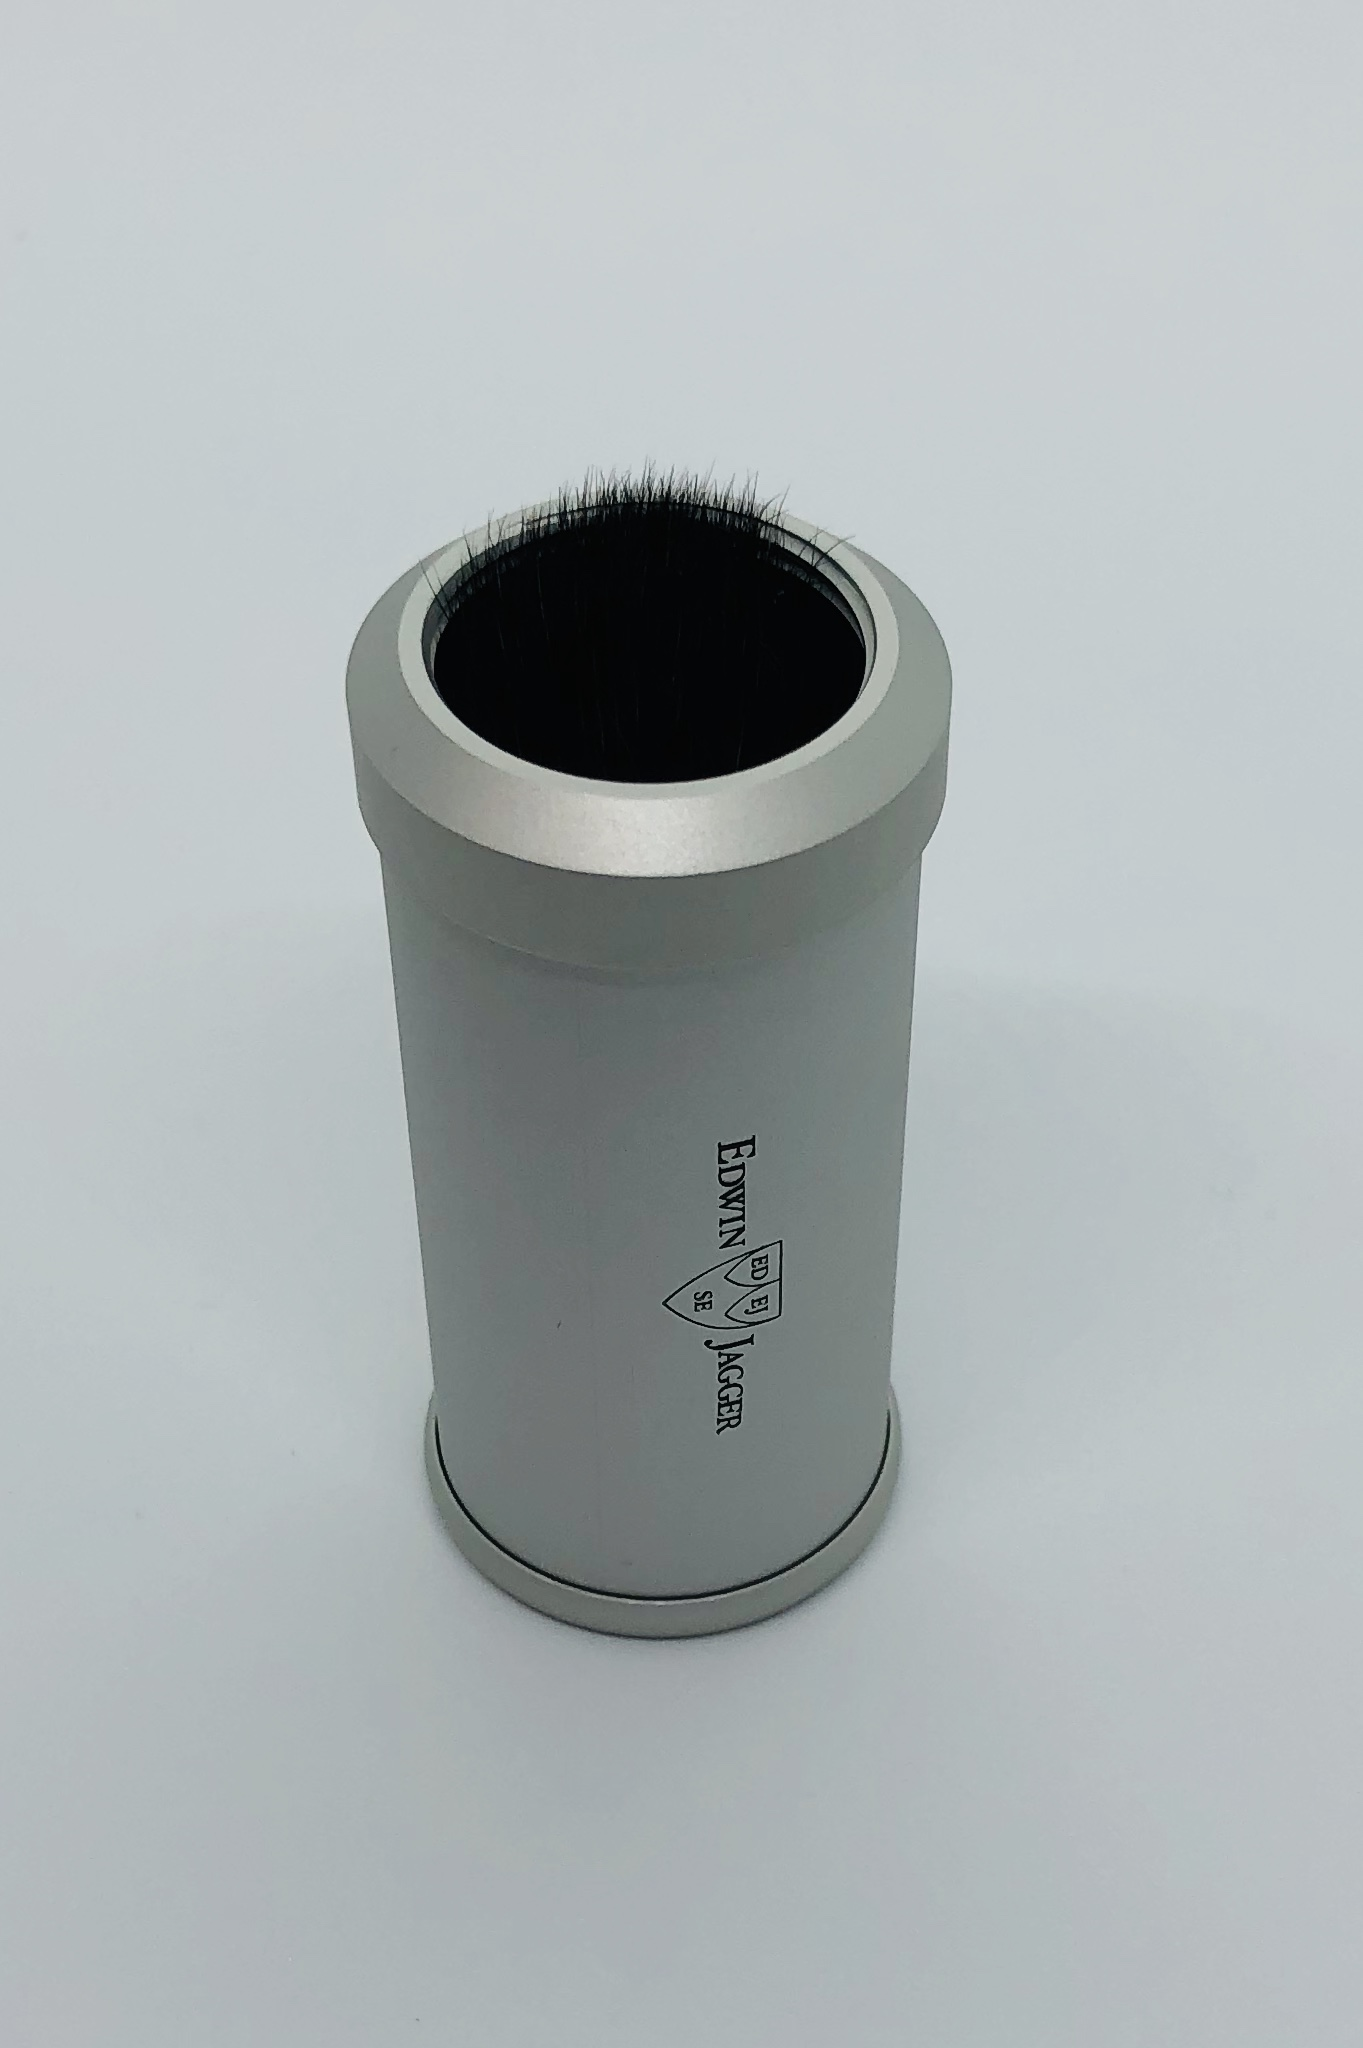 Travel brush edwin jagger silver synthetic